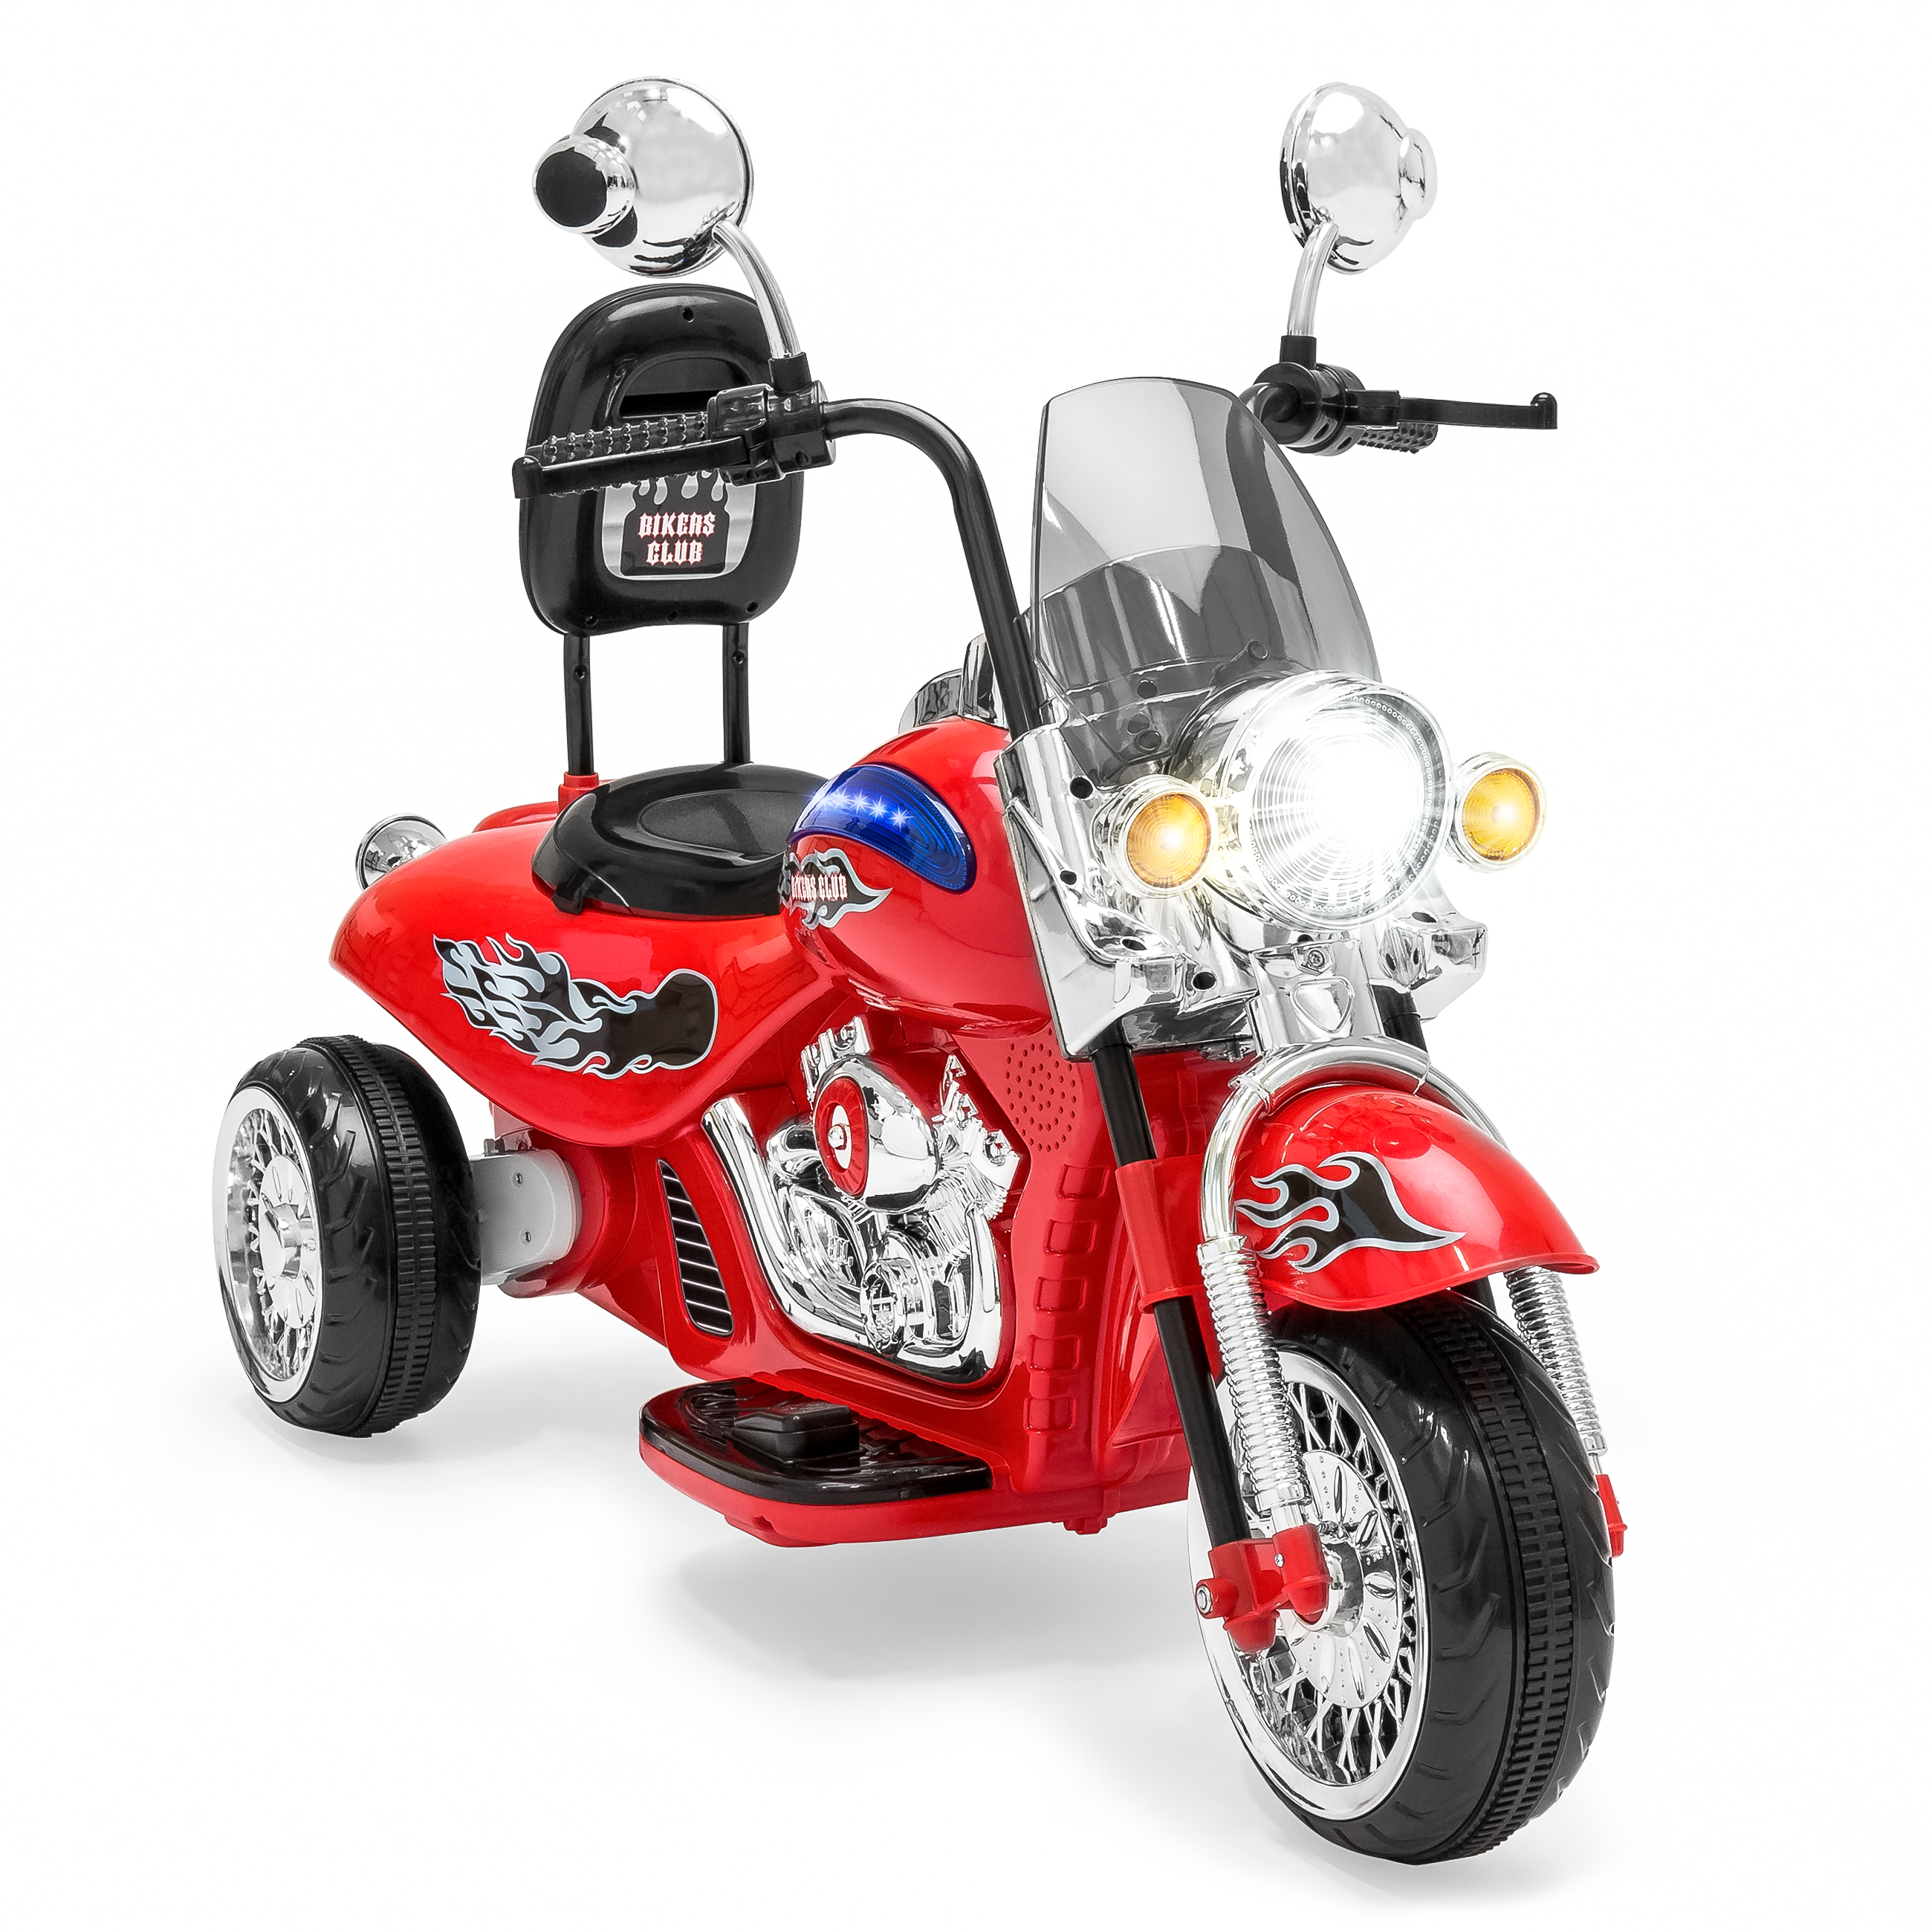 Best Choice Products 12V Kids Ride-On Motorcycle Chopper w/ Built-In Music, MP3 Plug-In - Red